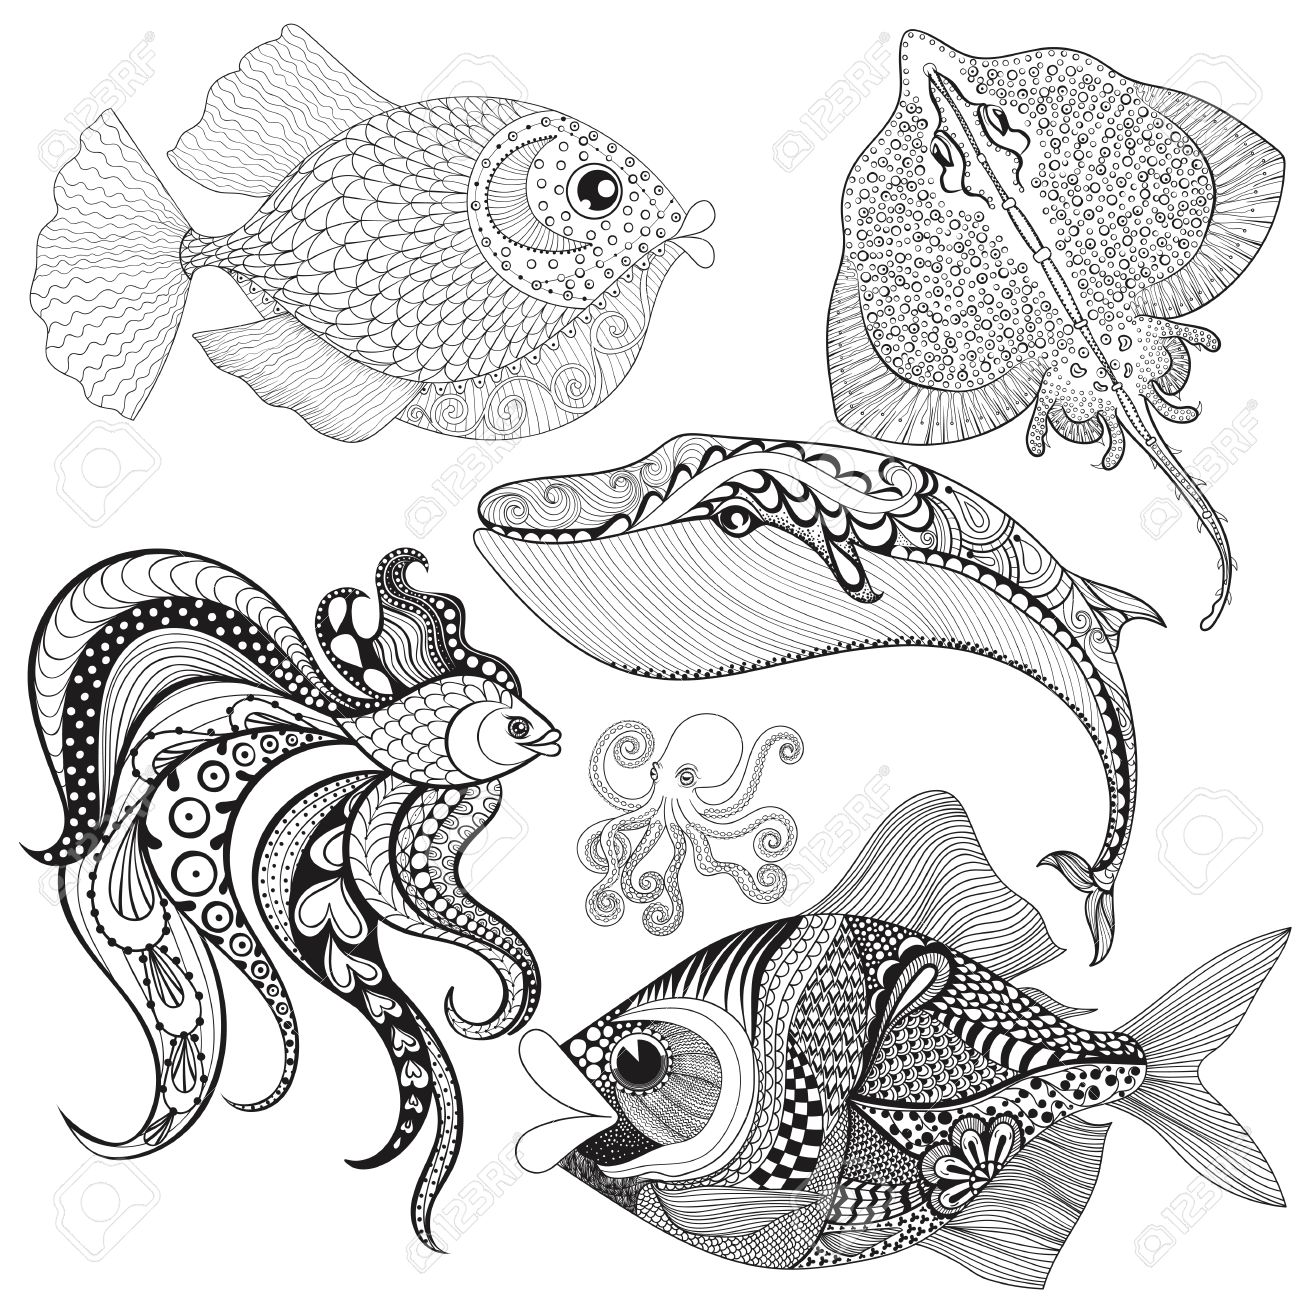 Stingray Coloring Pages. rava ray photographed by christian coulombe ...